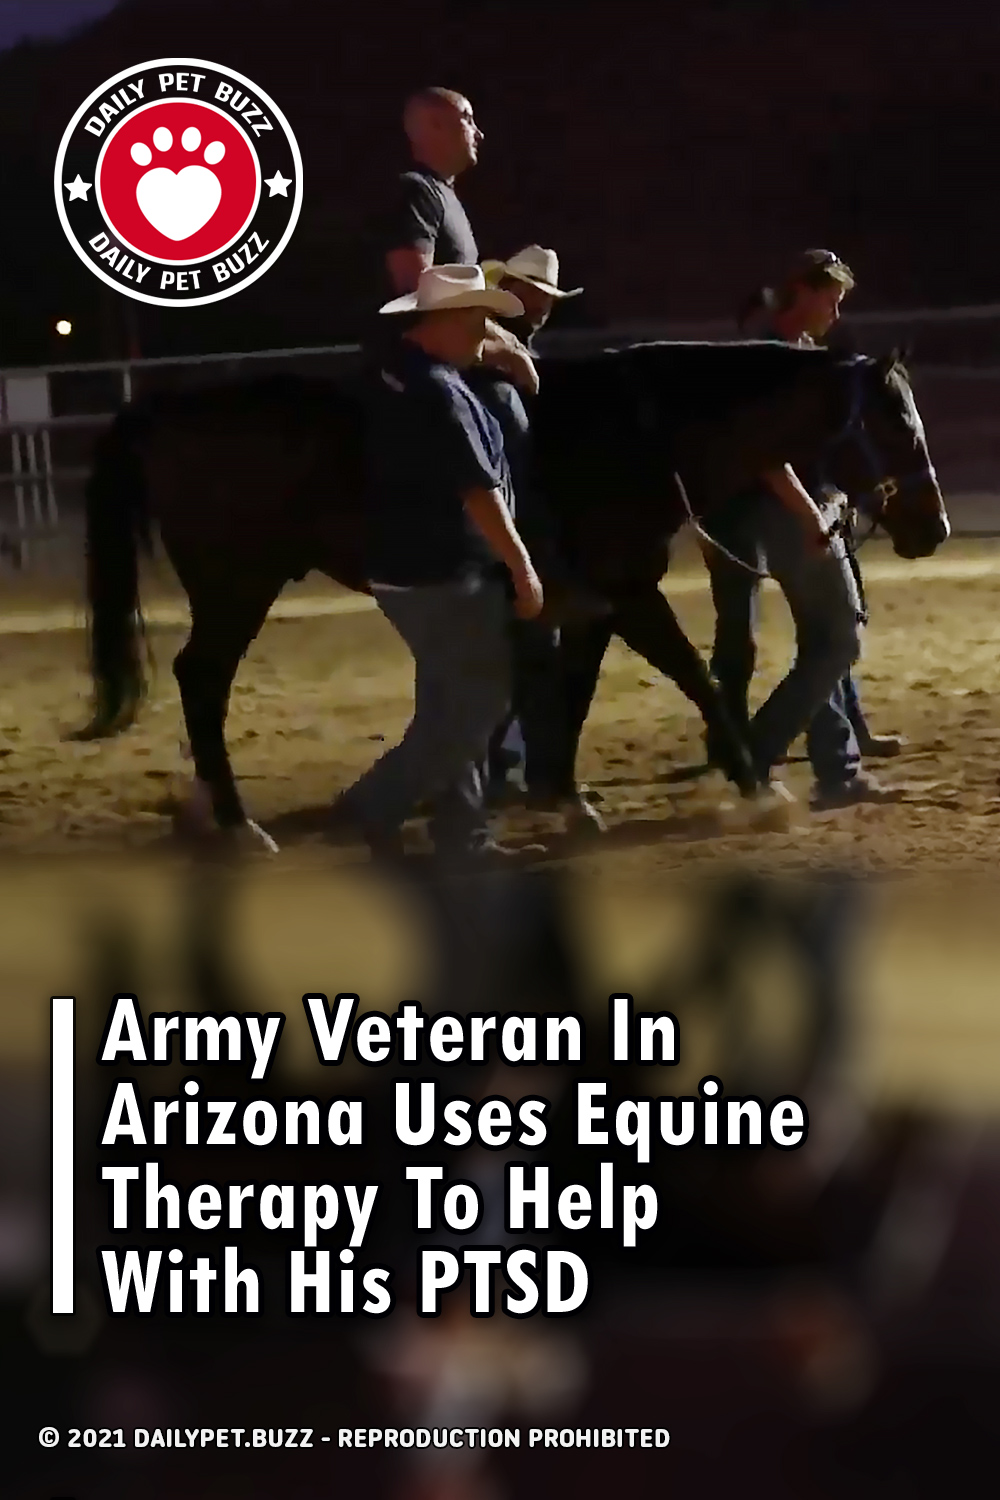 Army Veteran In Arizona Uses Equine Therapy To Help With His PTSD